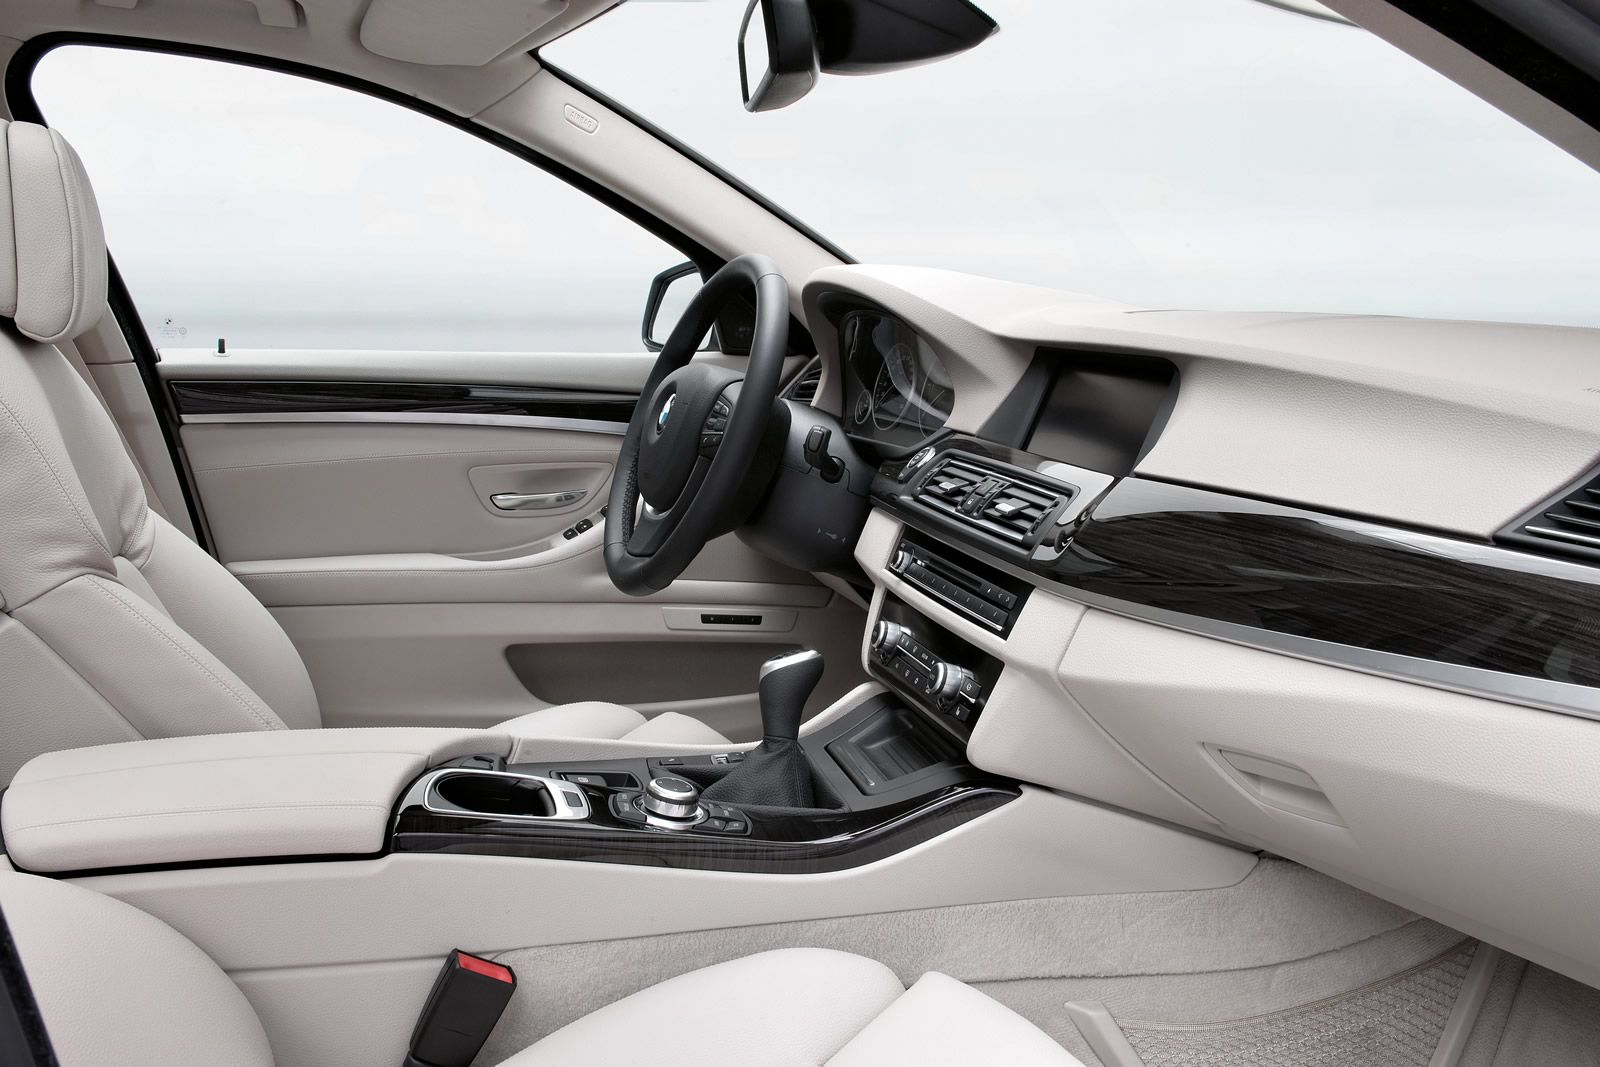 The new 2011 BMW 5 Series Touring with cool Highlights | BMWCoop